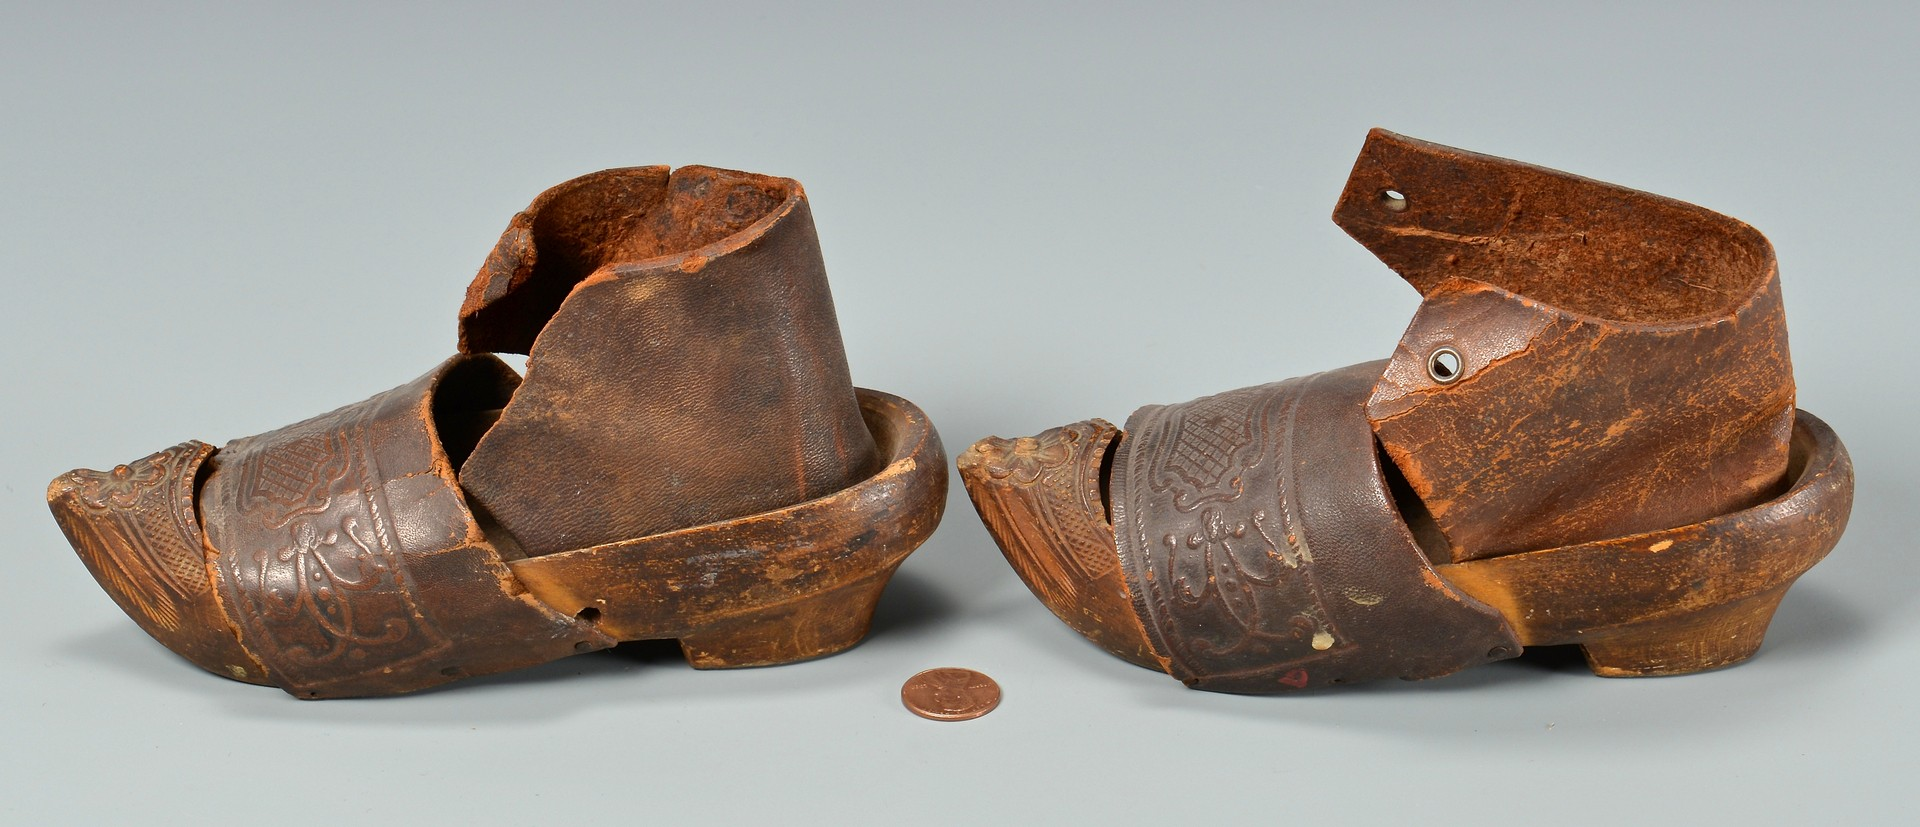 Lot 4010210: Japanese Meiji Copper Yatate, Pr. Chinese Binding Shoes & More, 6 items